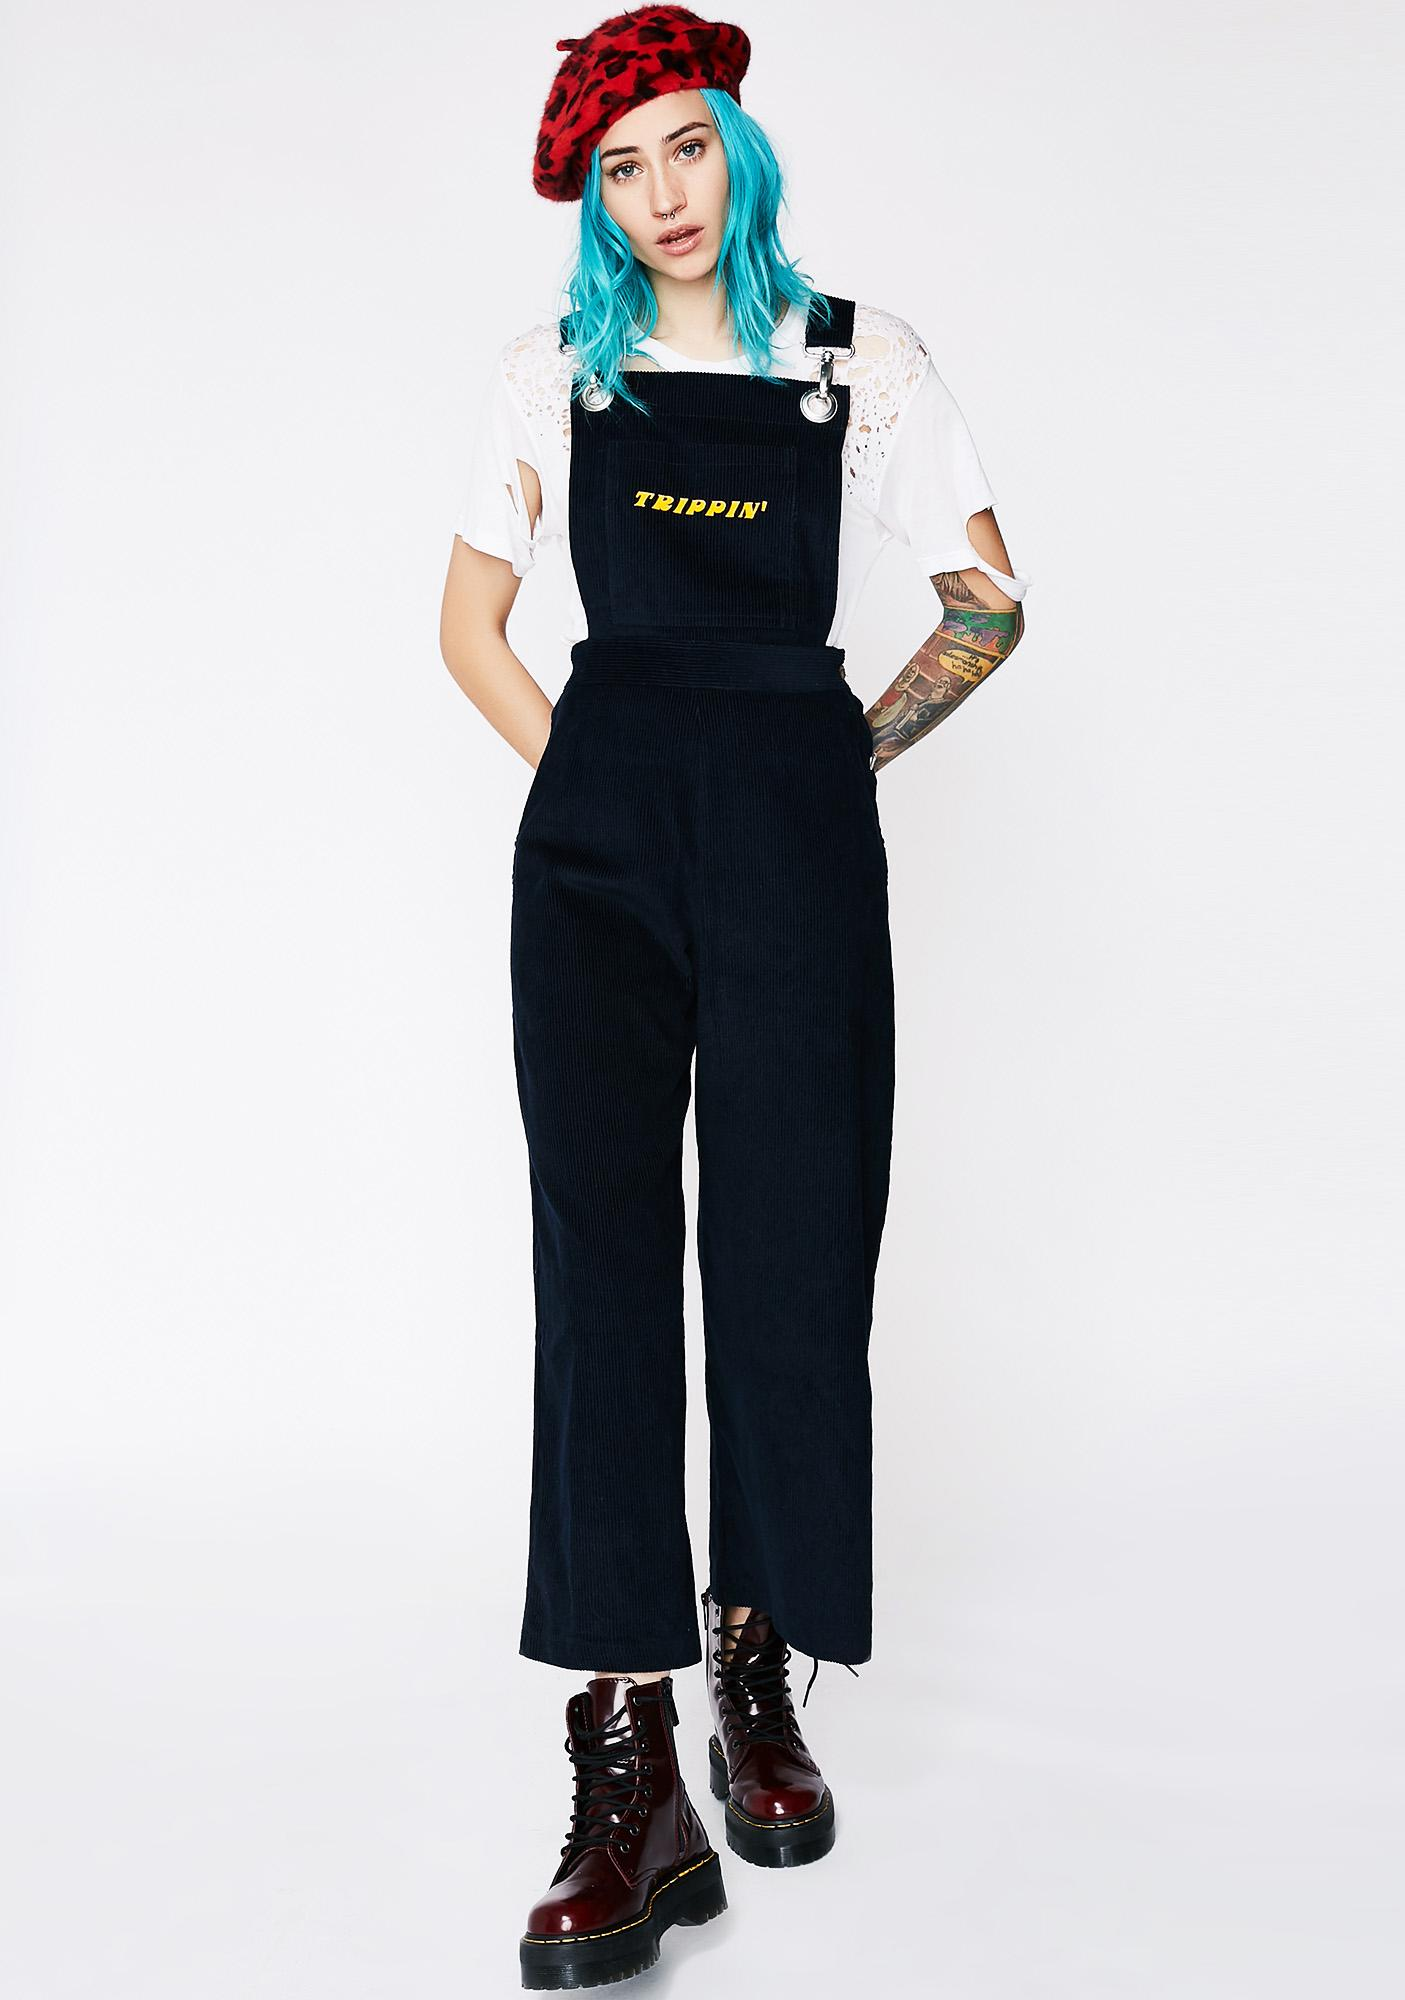 The Ragged Priest Trippin' Dungaree